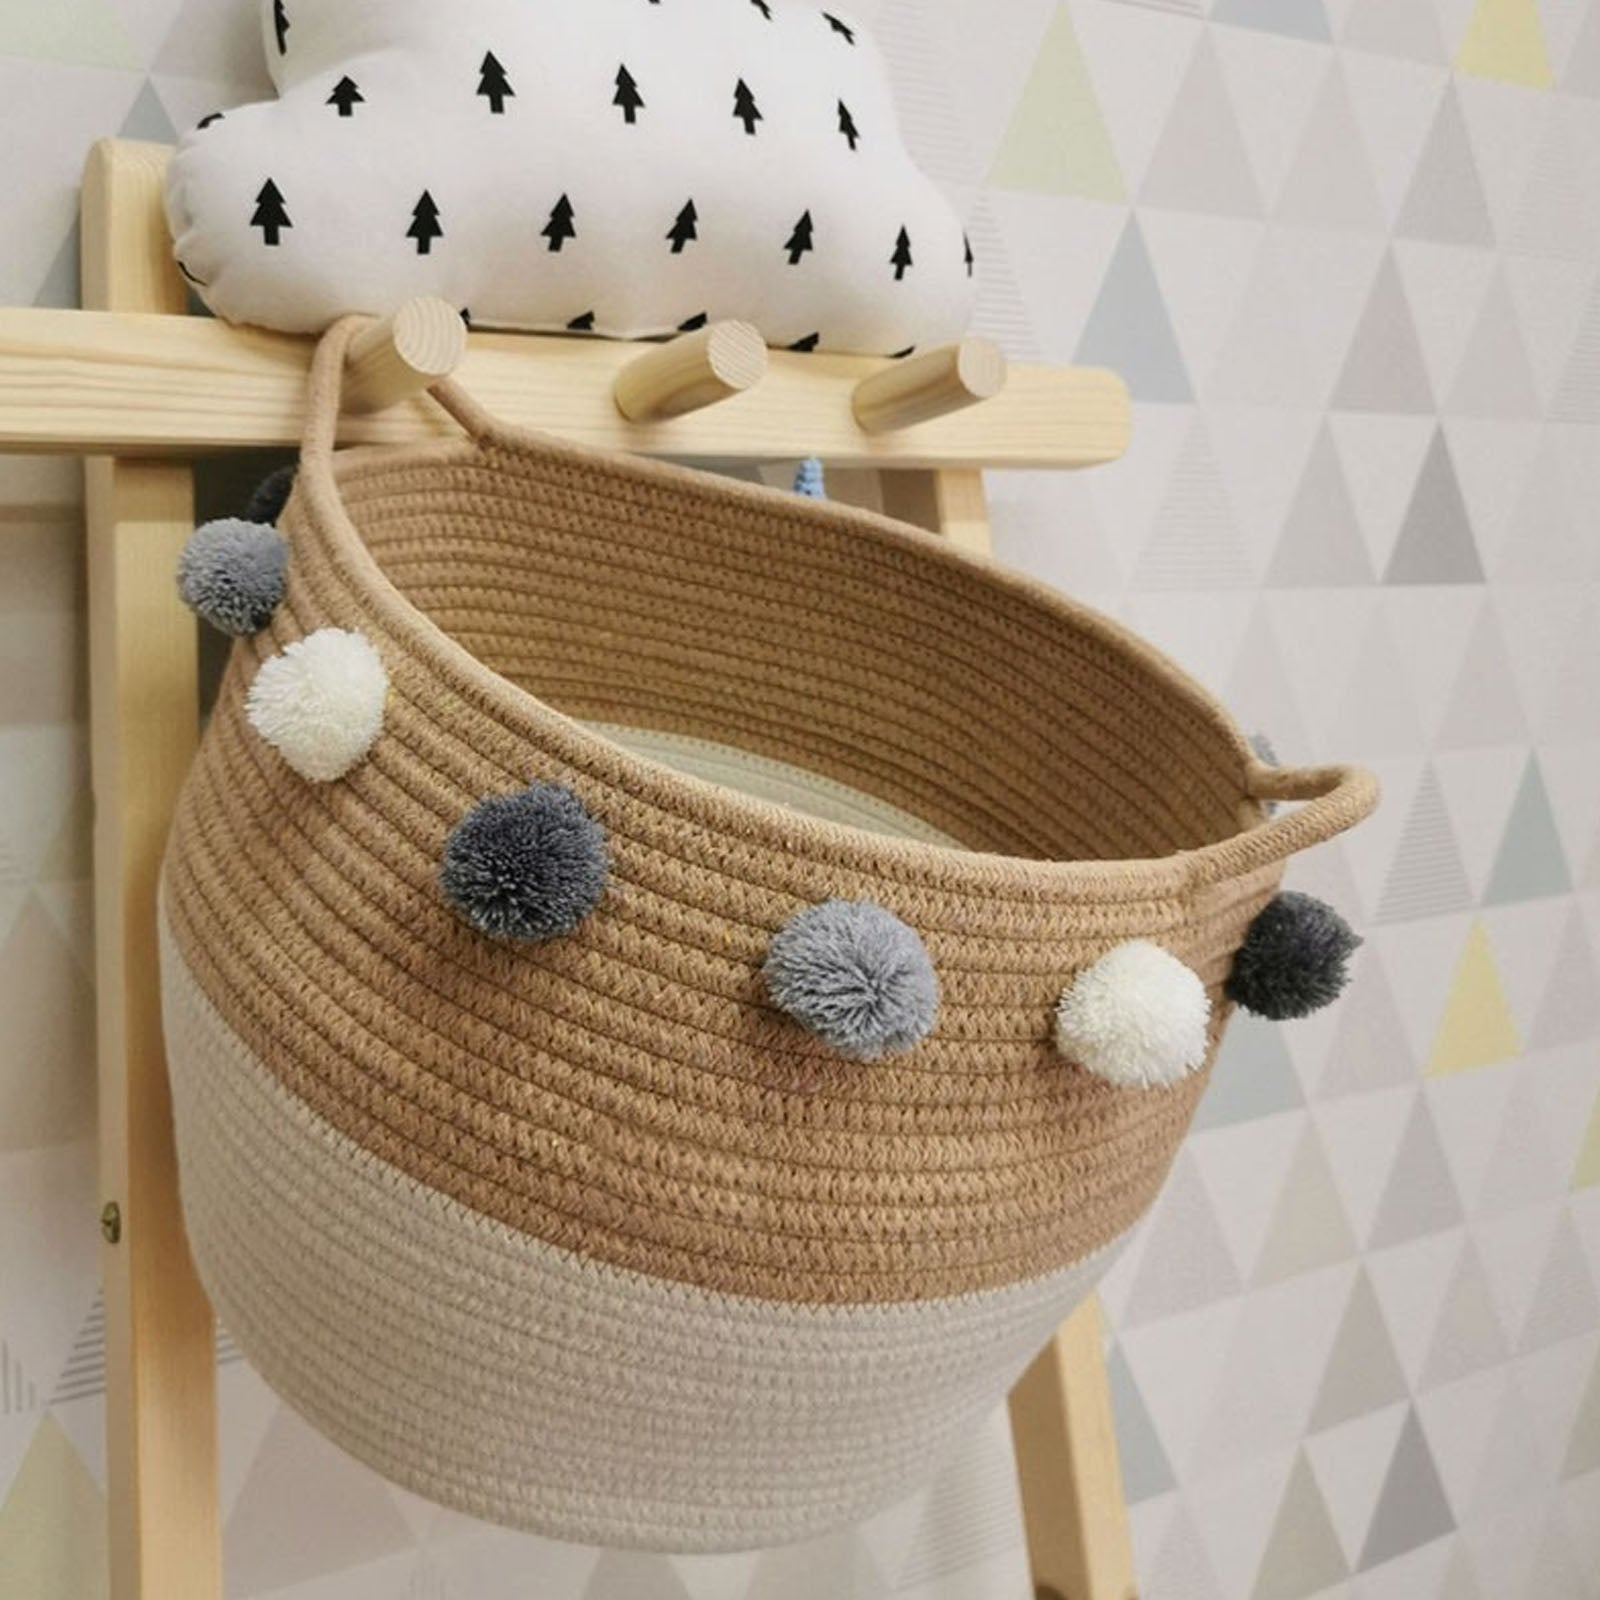 Handmade Basket 190410-015 -  سلة مصنوعة يدويا - Shop Online Furniture and Home Decor Store in Dubai, UAE at ebarza